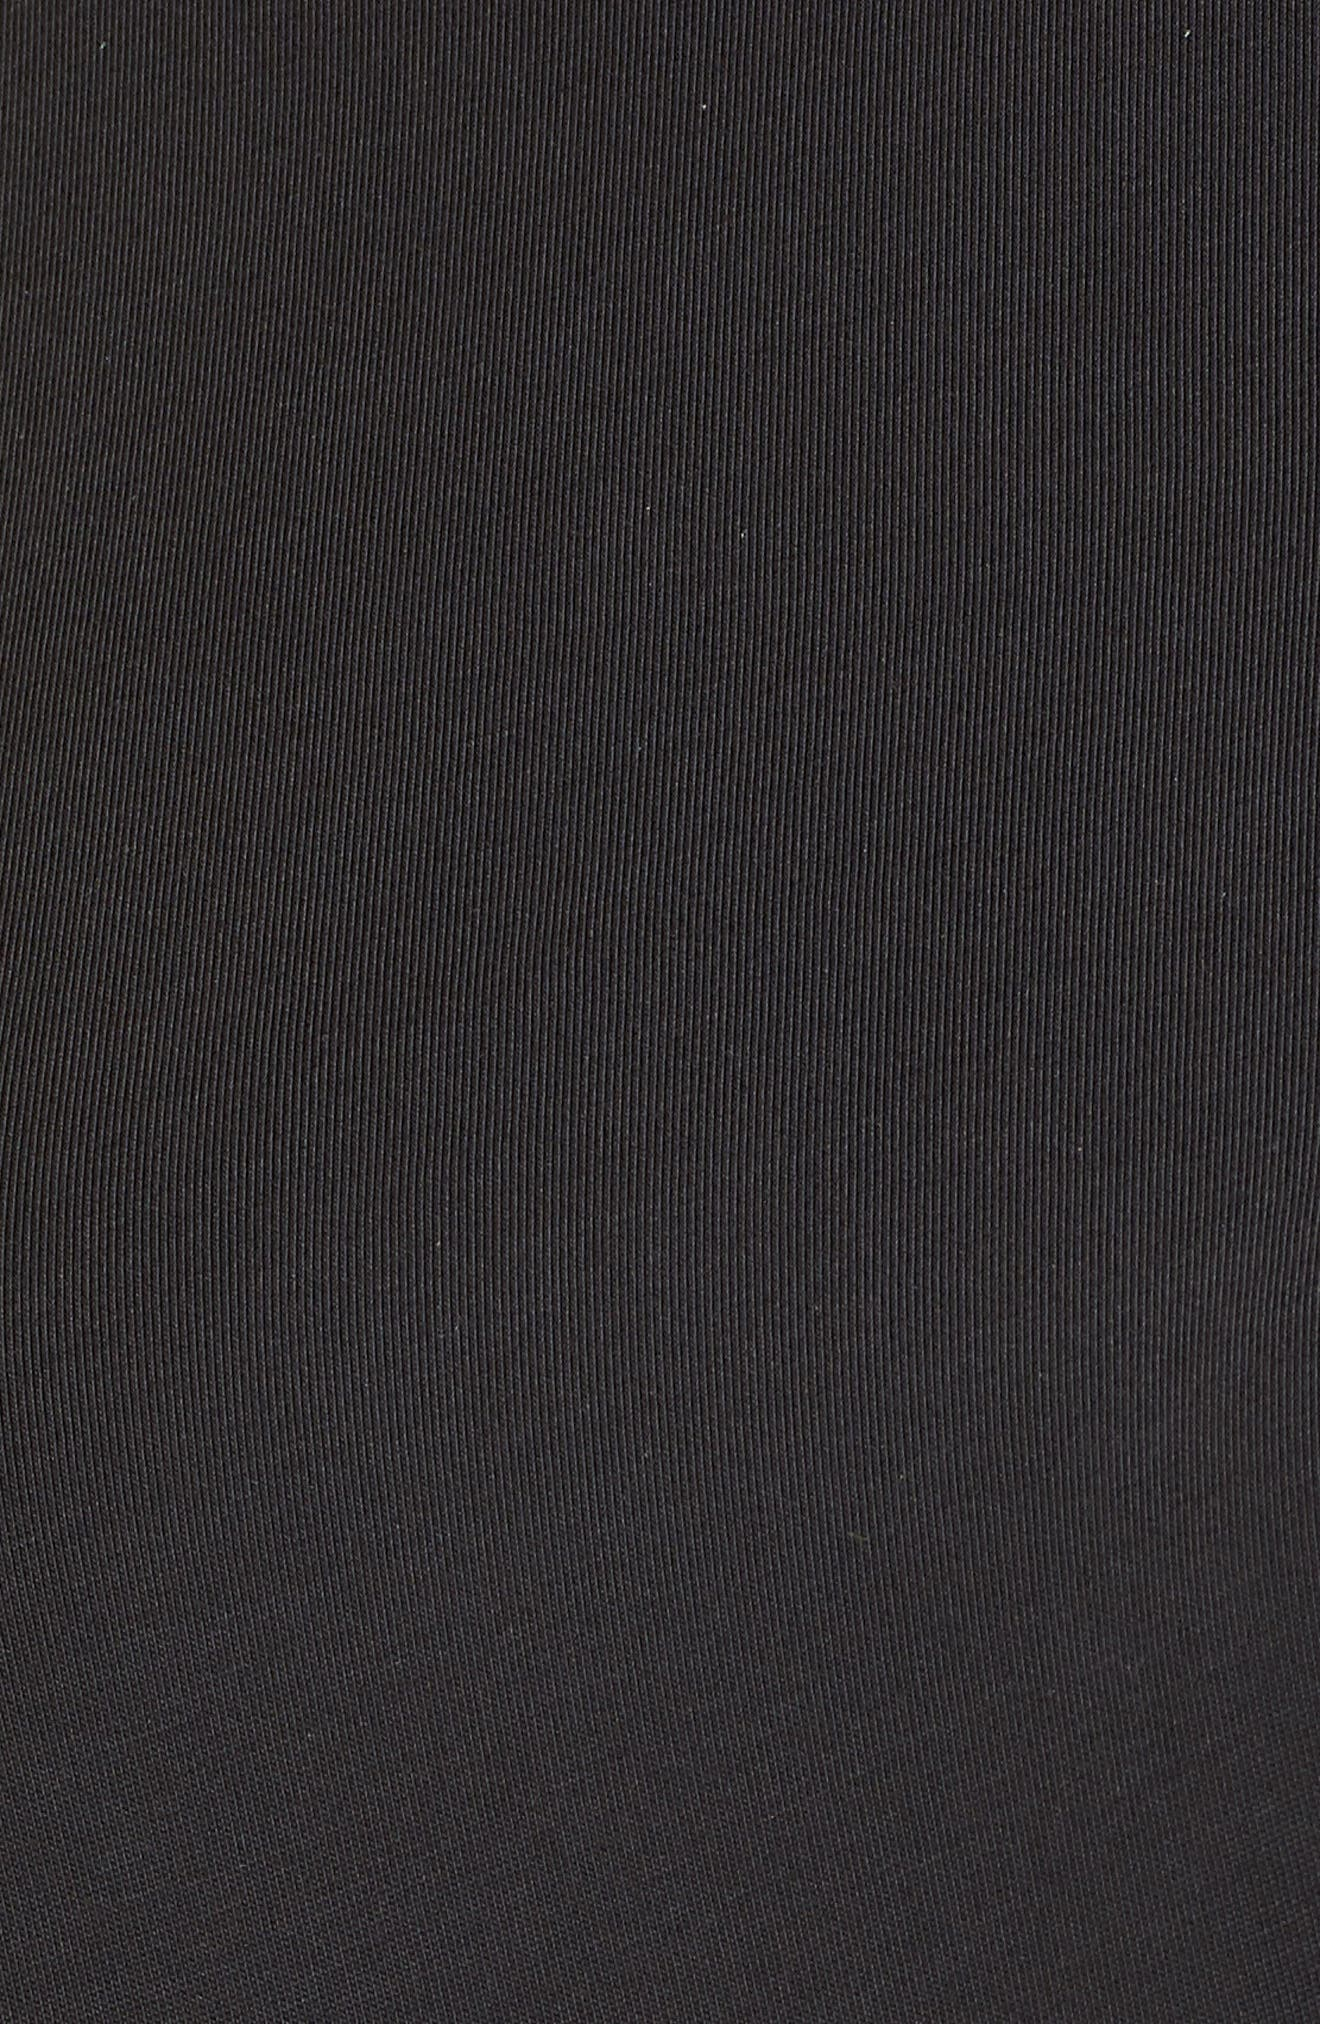 Ruched Waist Tee,                             Alternate thumbnail 6, color,                             001